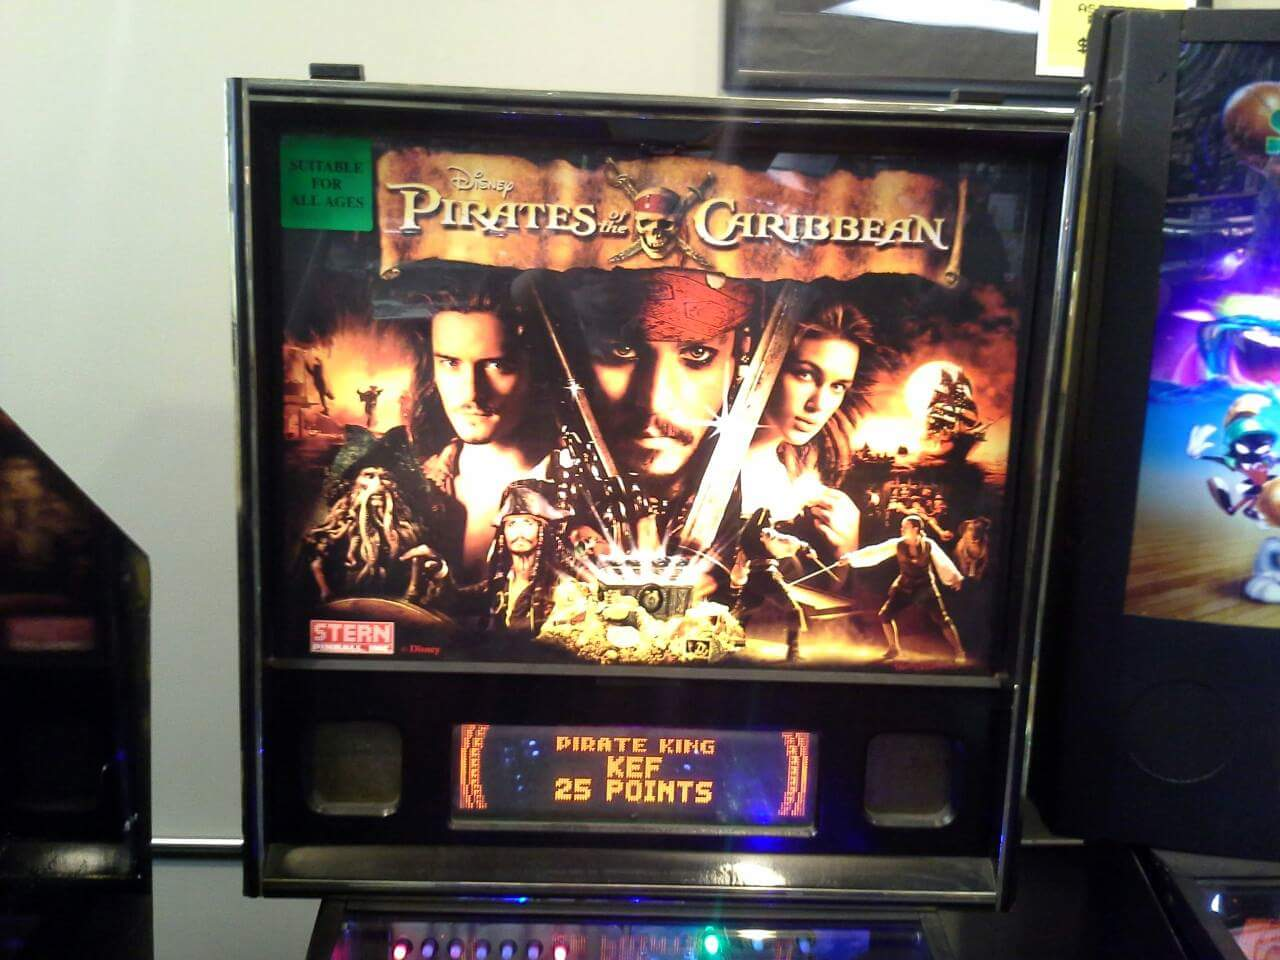 Pirates of the Caribbean 4,235,110 points